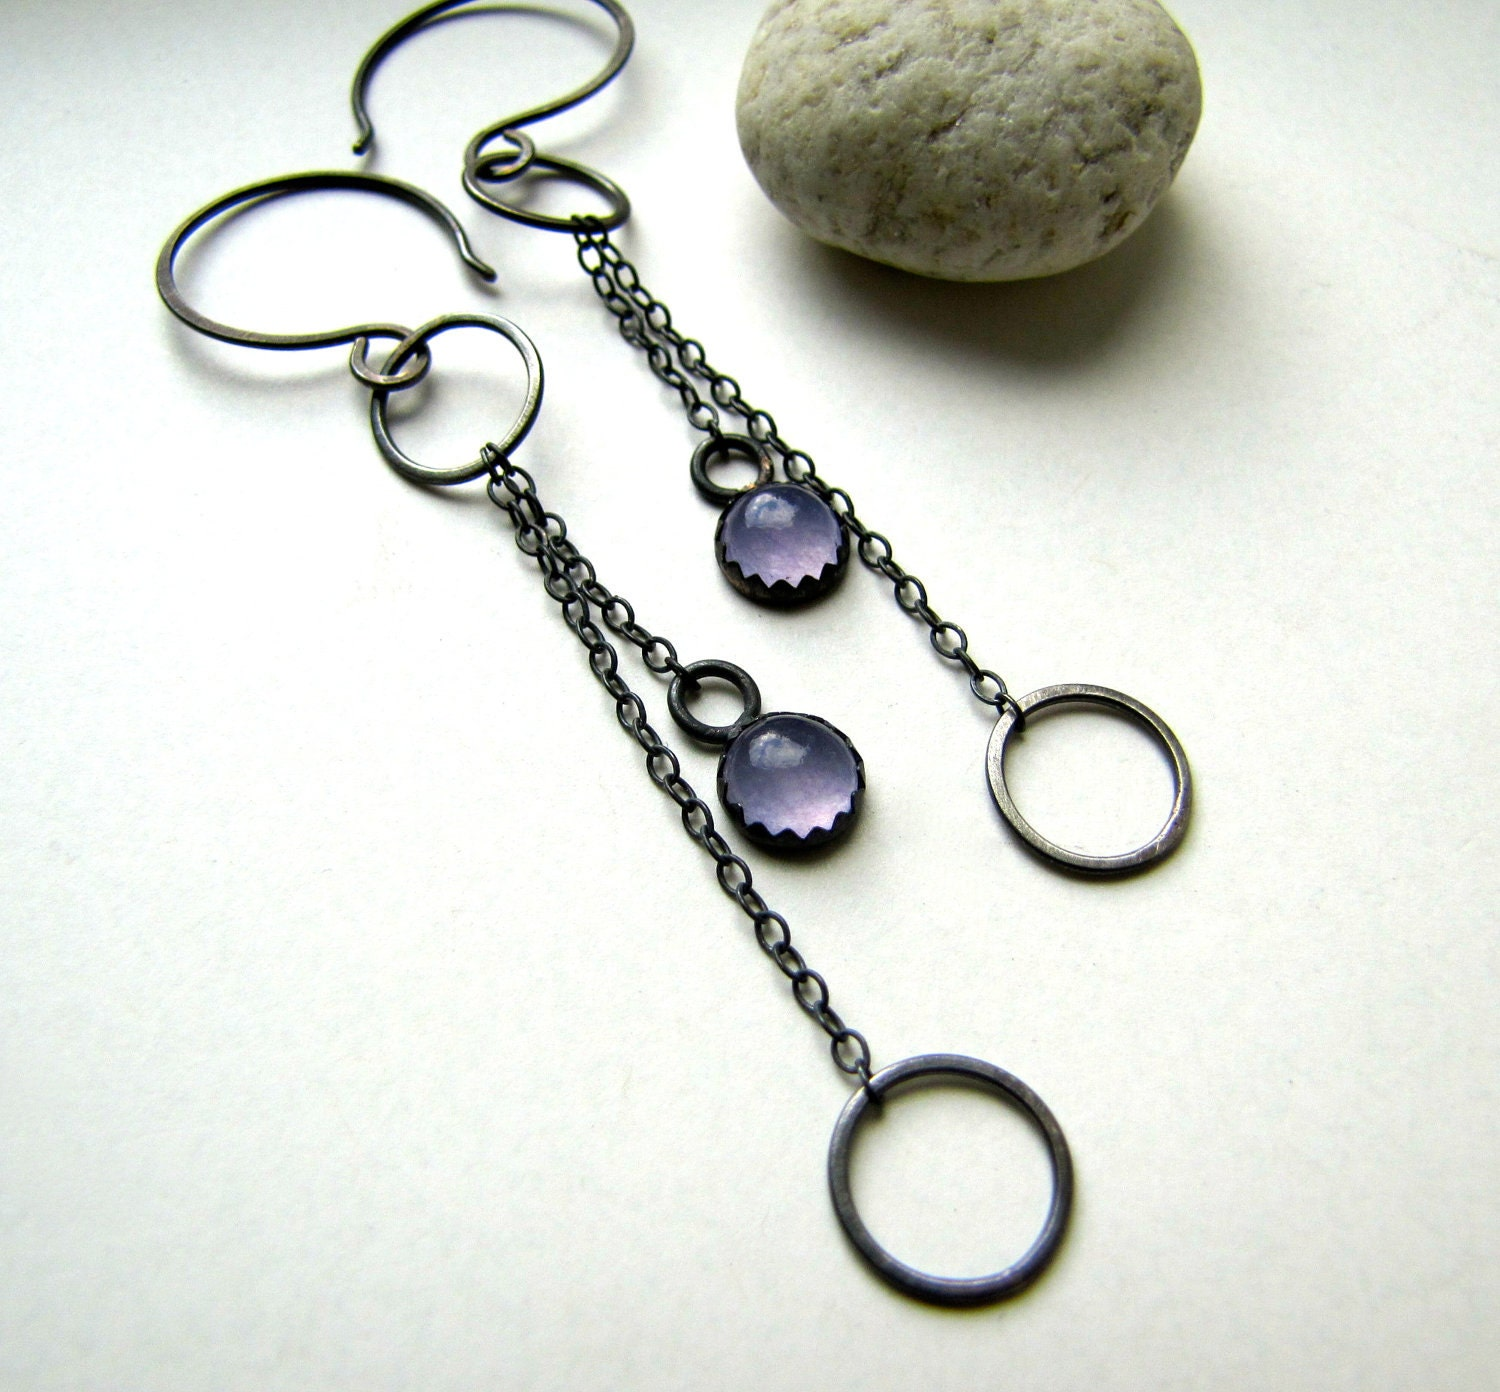 Balancing Act purple chalcedony and sterling silver earrings